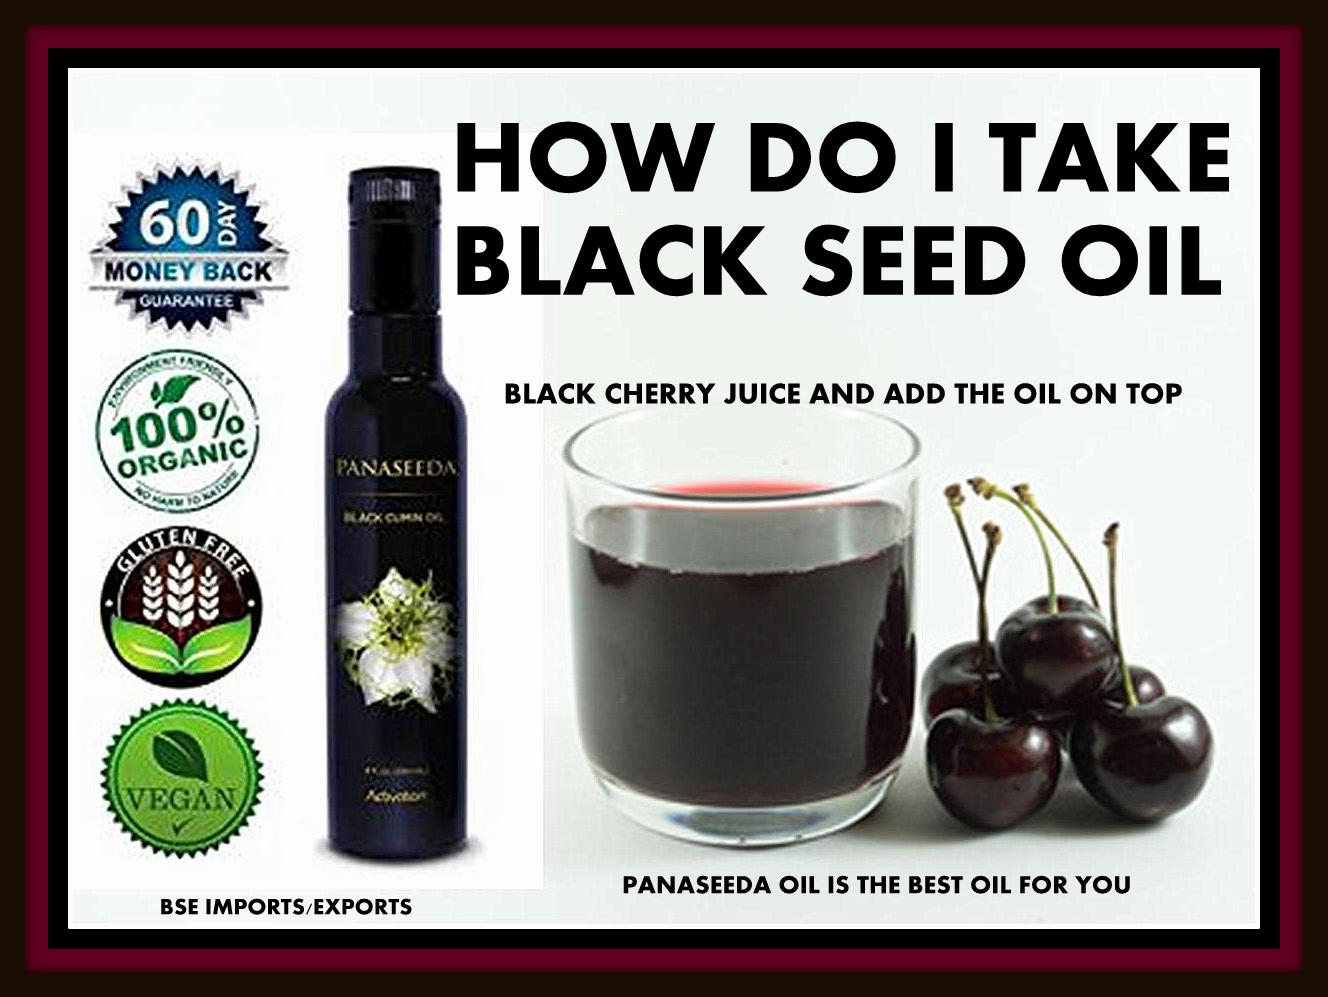 DOCTOR RECOMMENDATION ON HOW TO TAKE BLACK SEED OIL